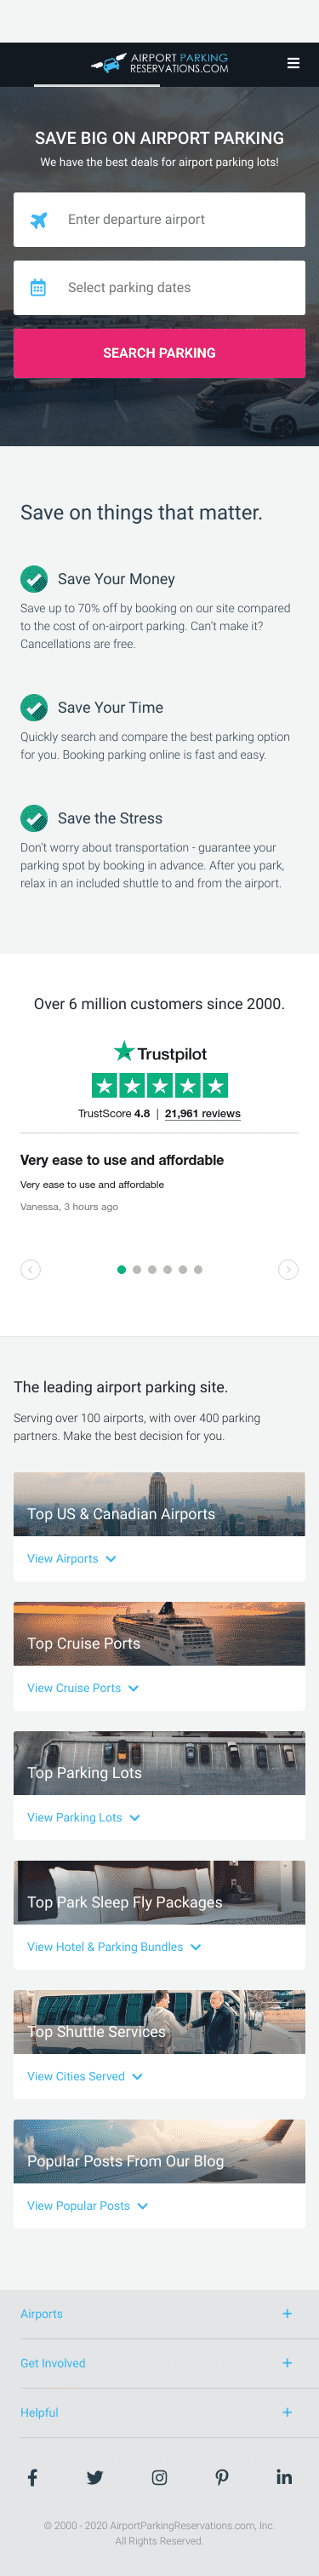 Airport Parking Reservations - point. click. park. Coupon